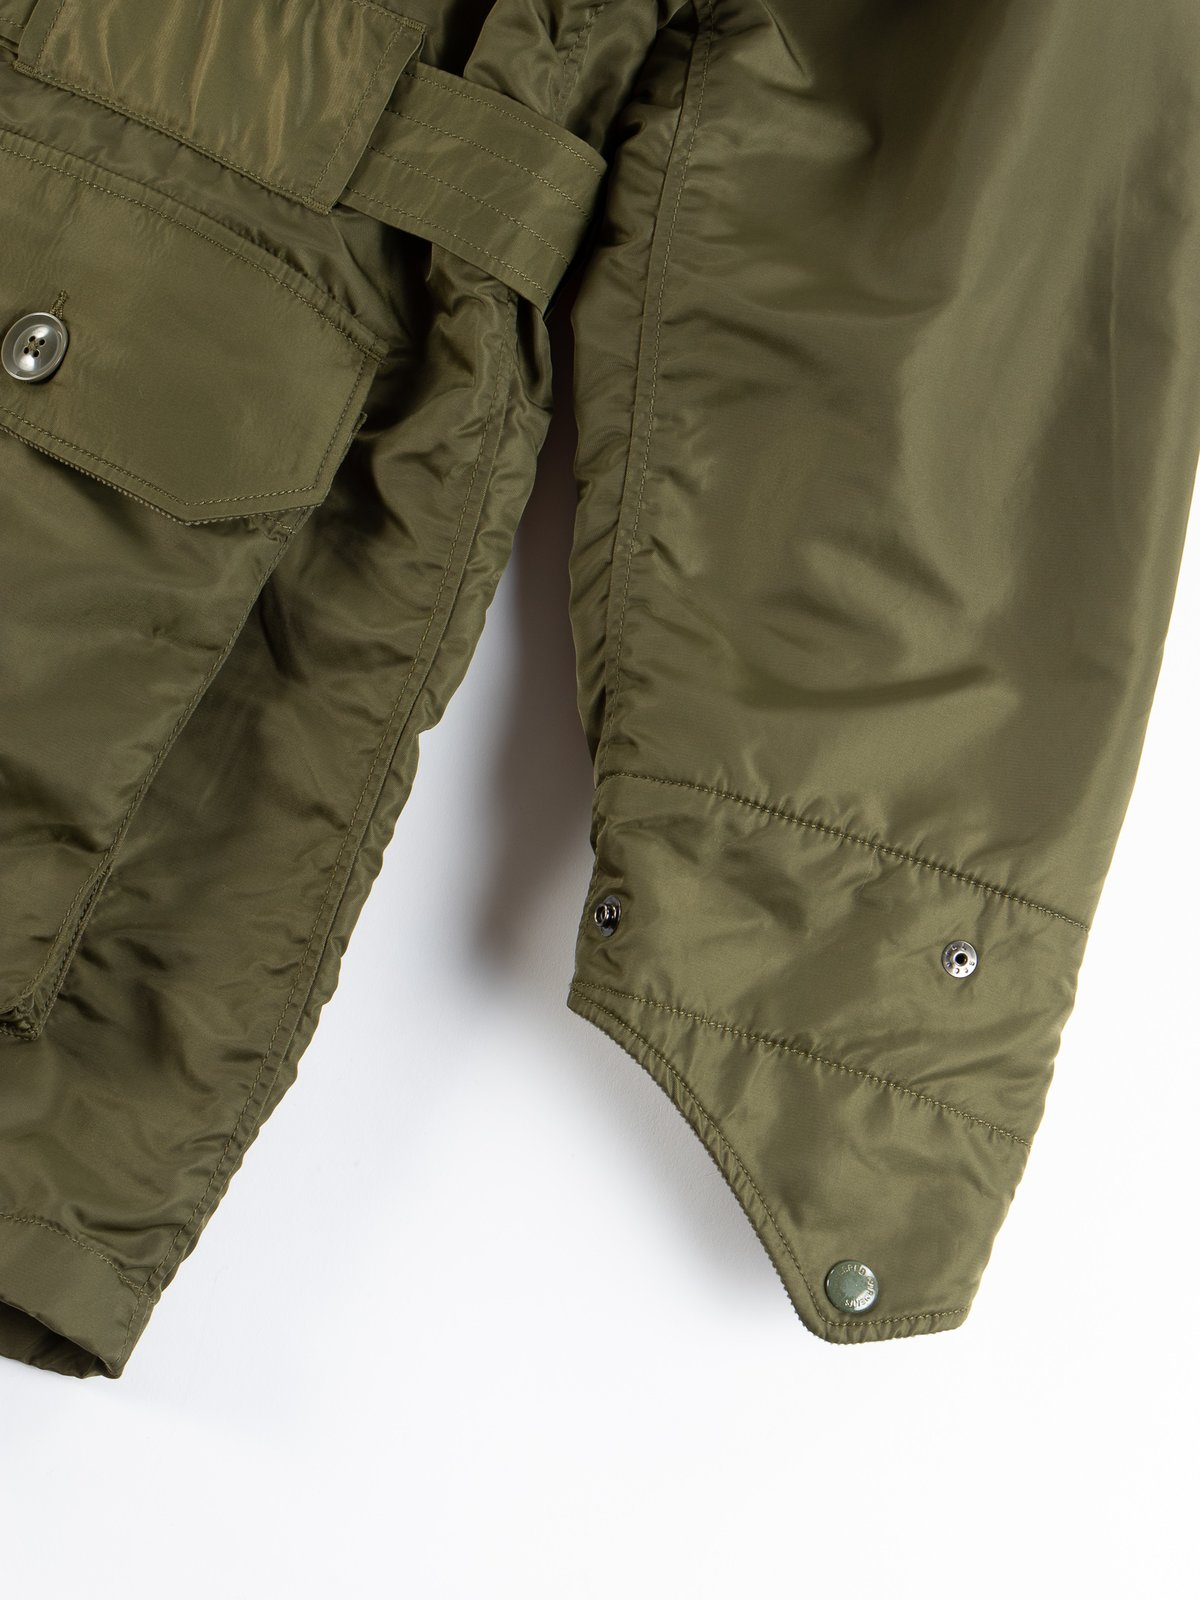 Olive Flight Satin Nylon Field Parka - Image 7